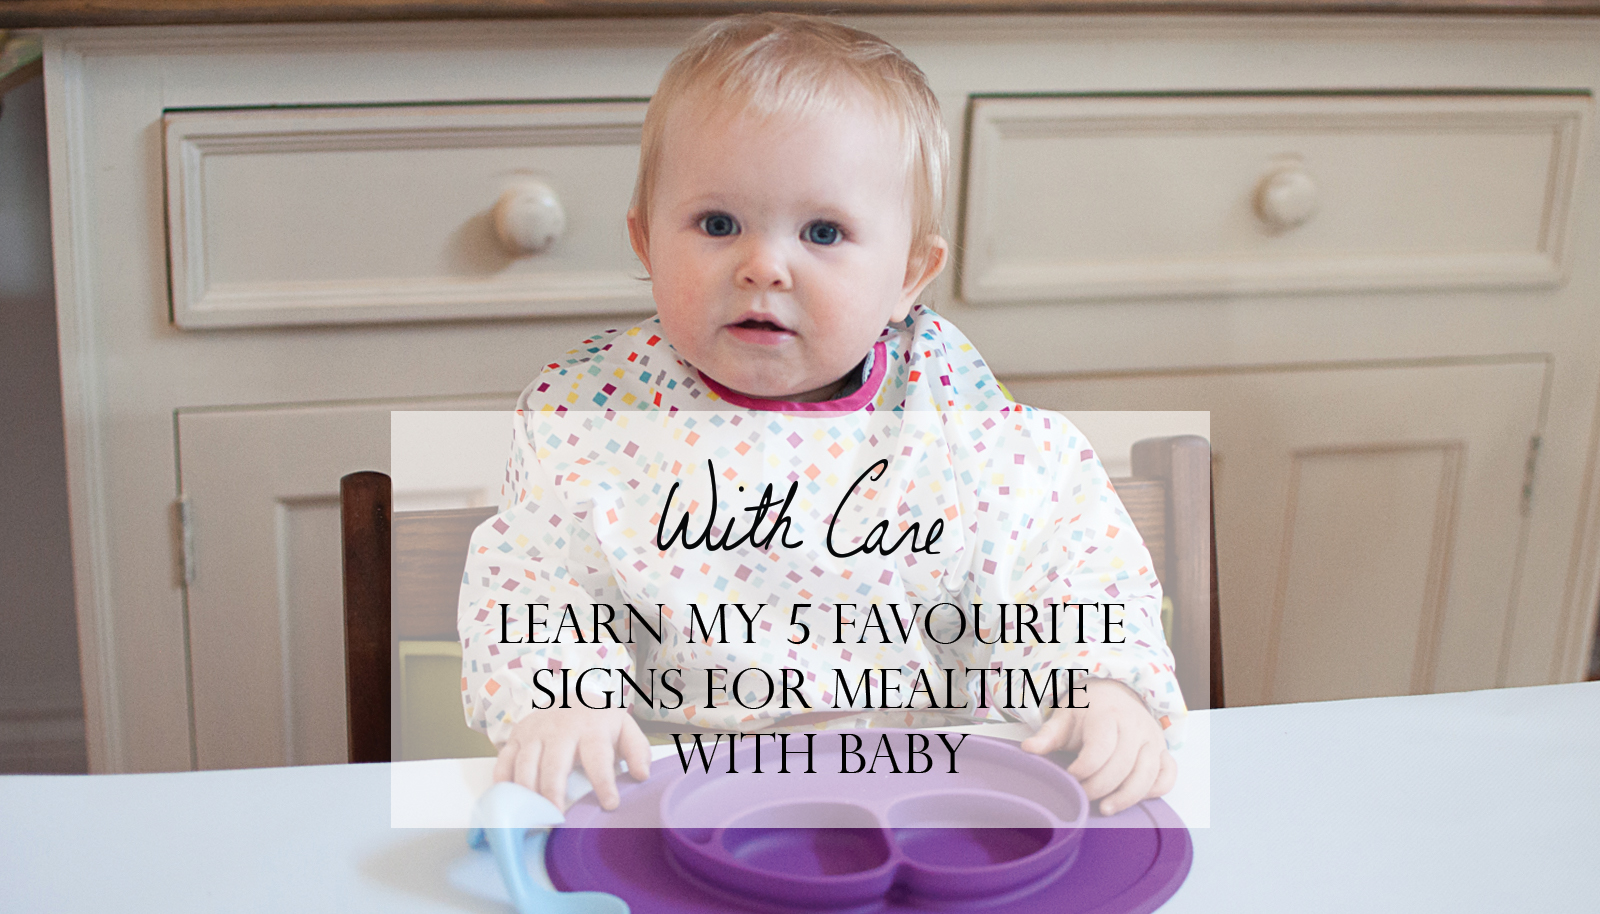 Signs for mealtime.jpg